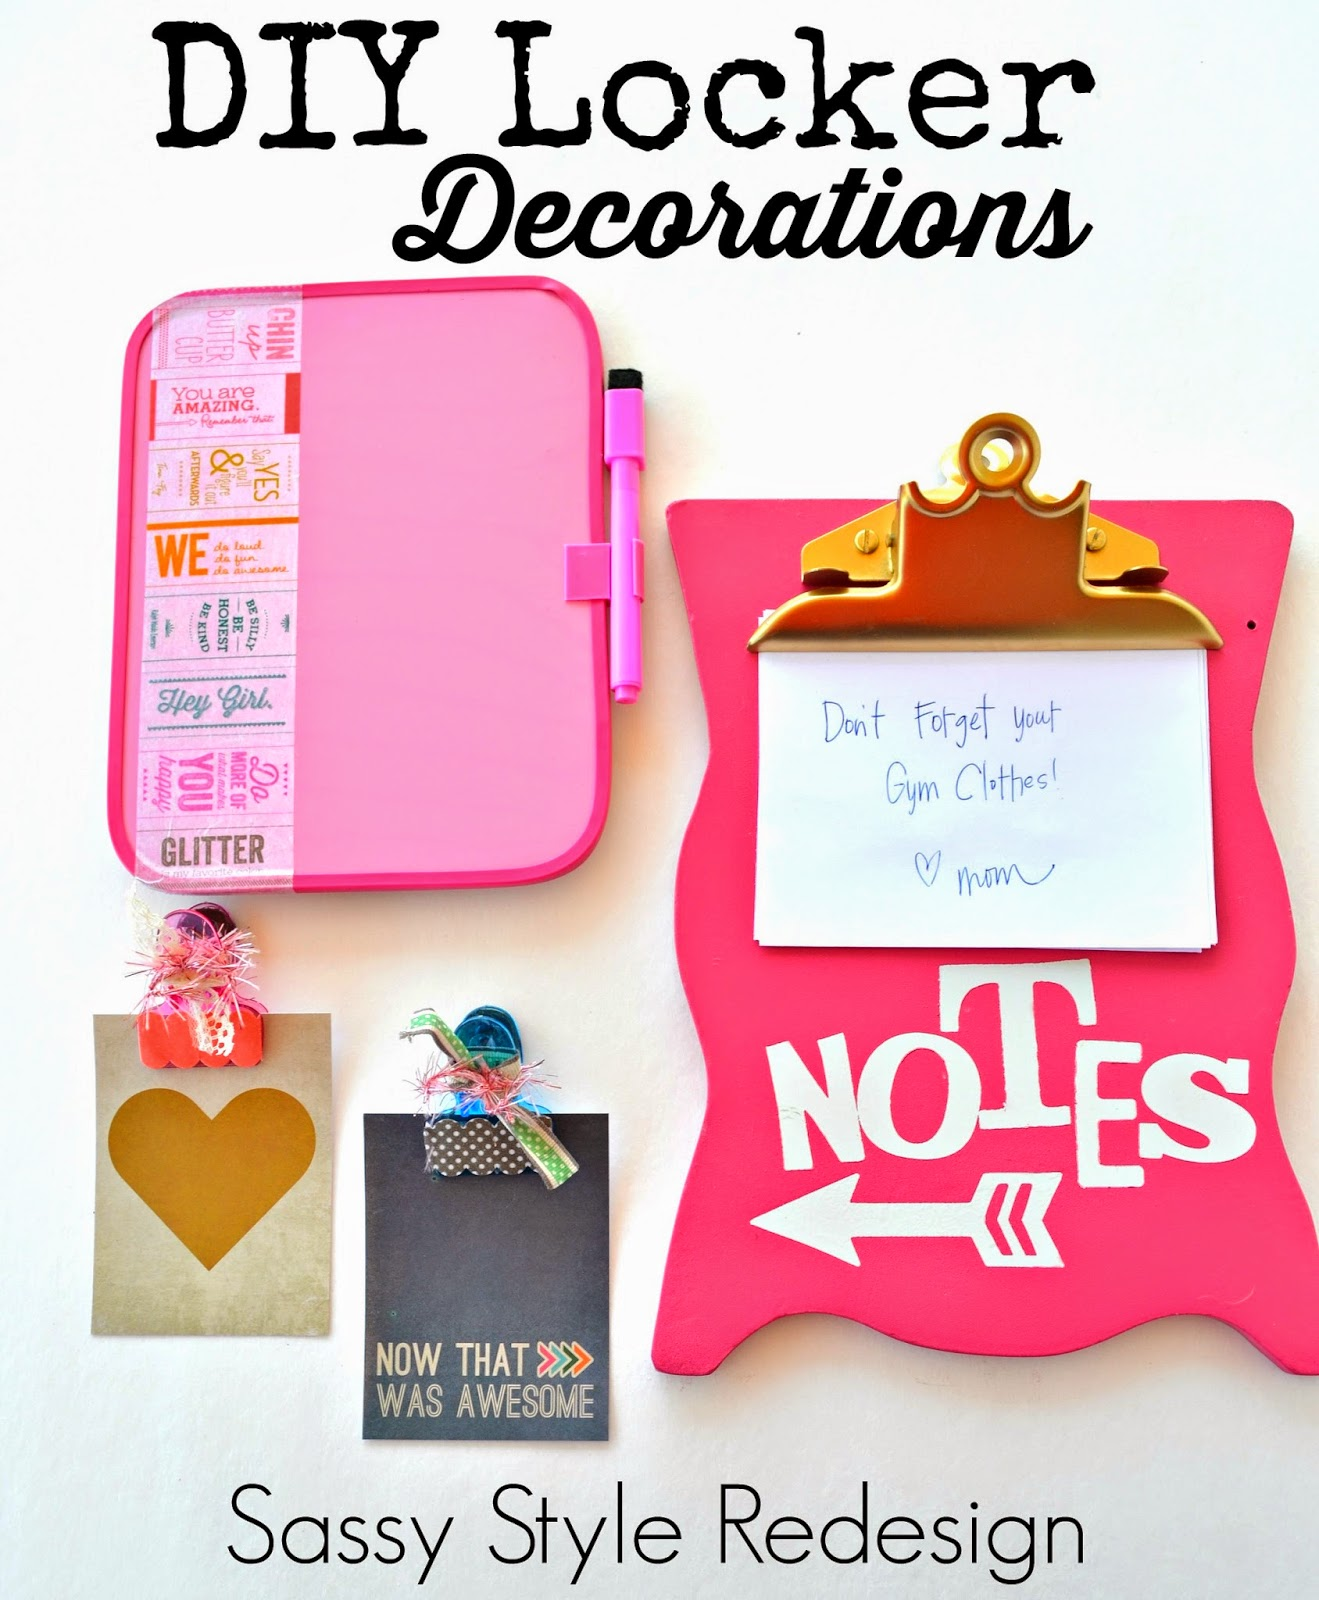 http://www.sassystyleredesign.com/2014/07/diy-locker-decorations.html